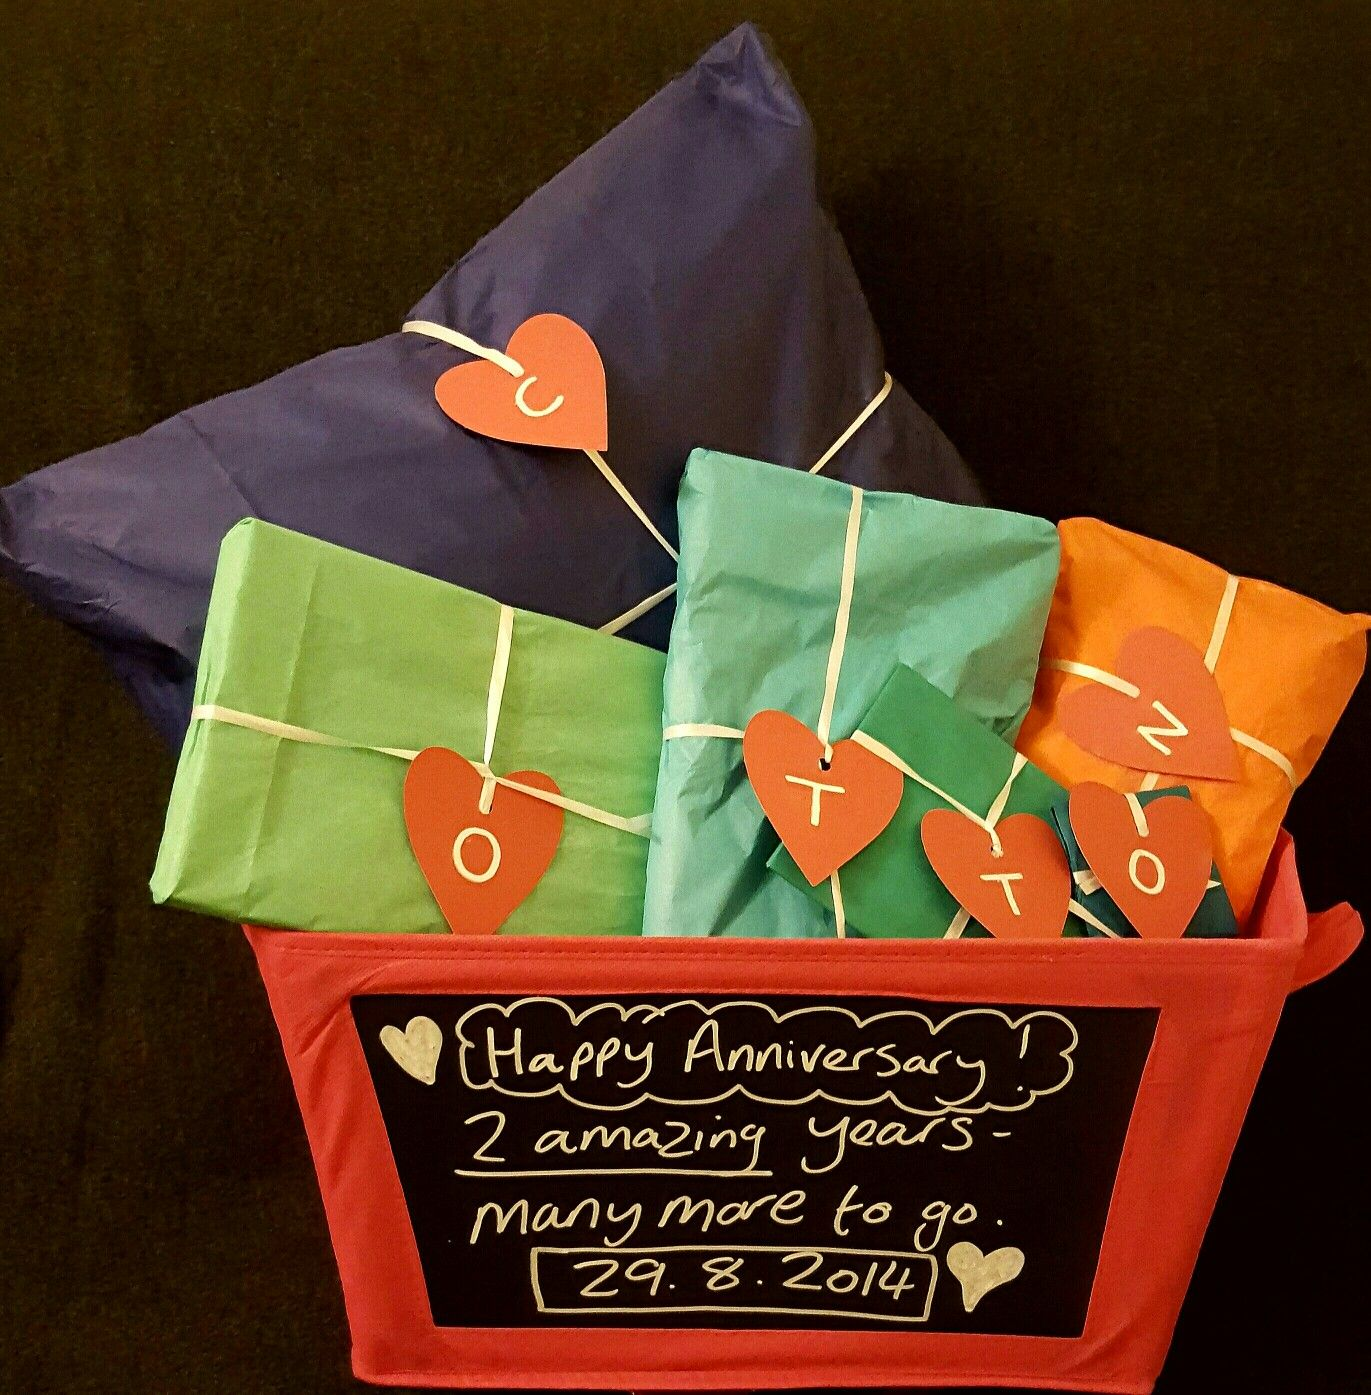 2nd anniversary gift for hubby using cotton as an acronym Contents Cotton personalised cushon